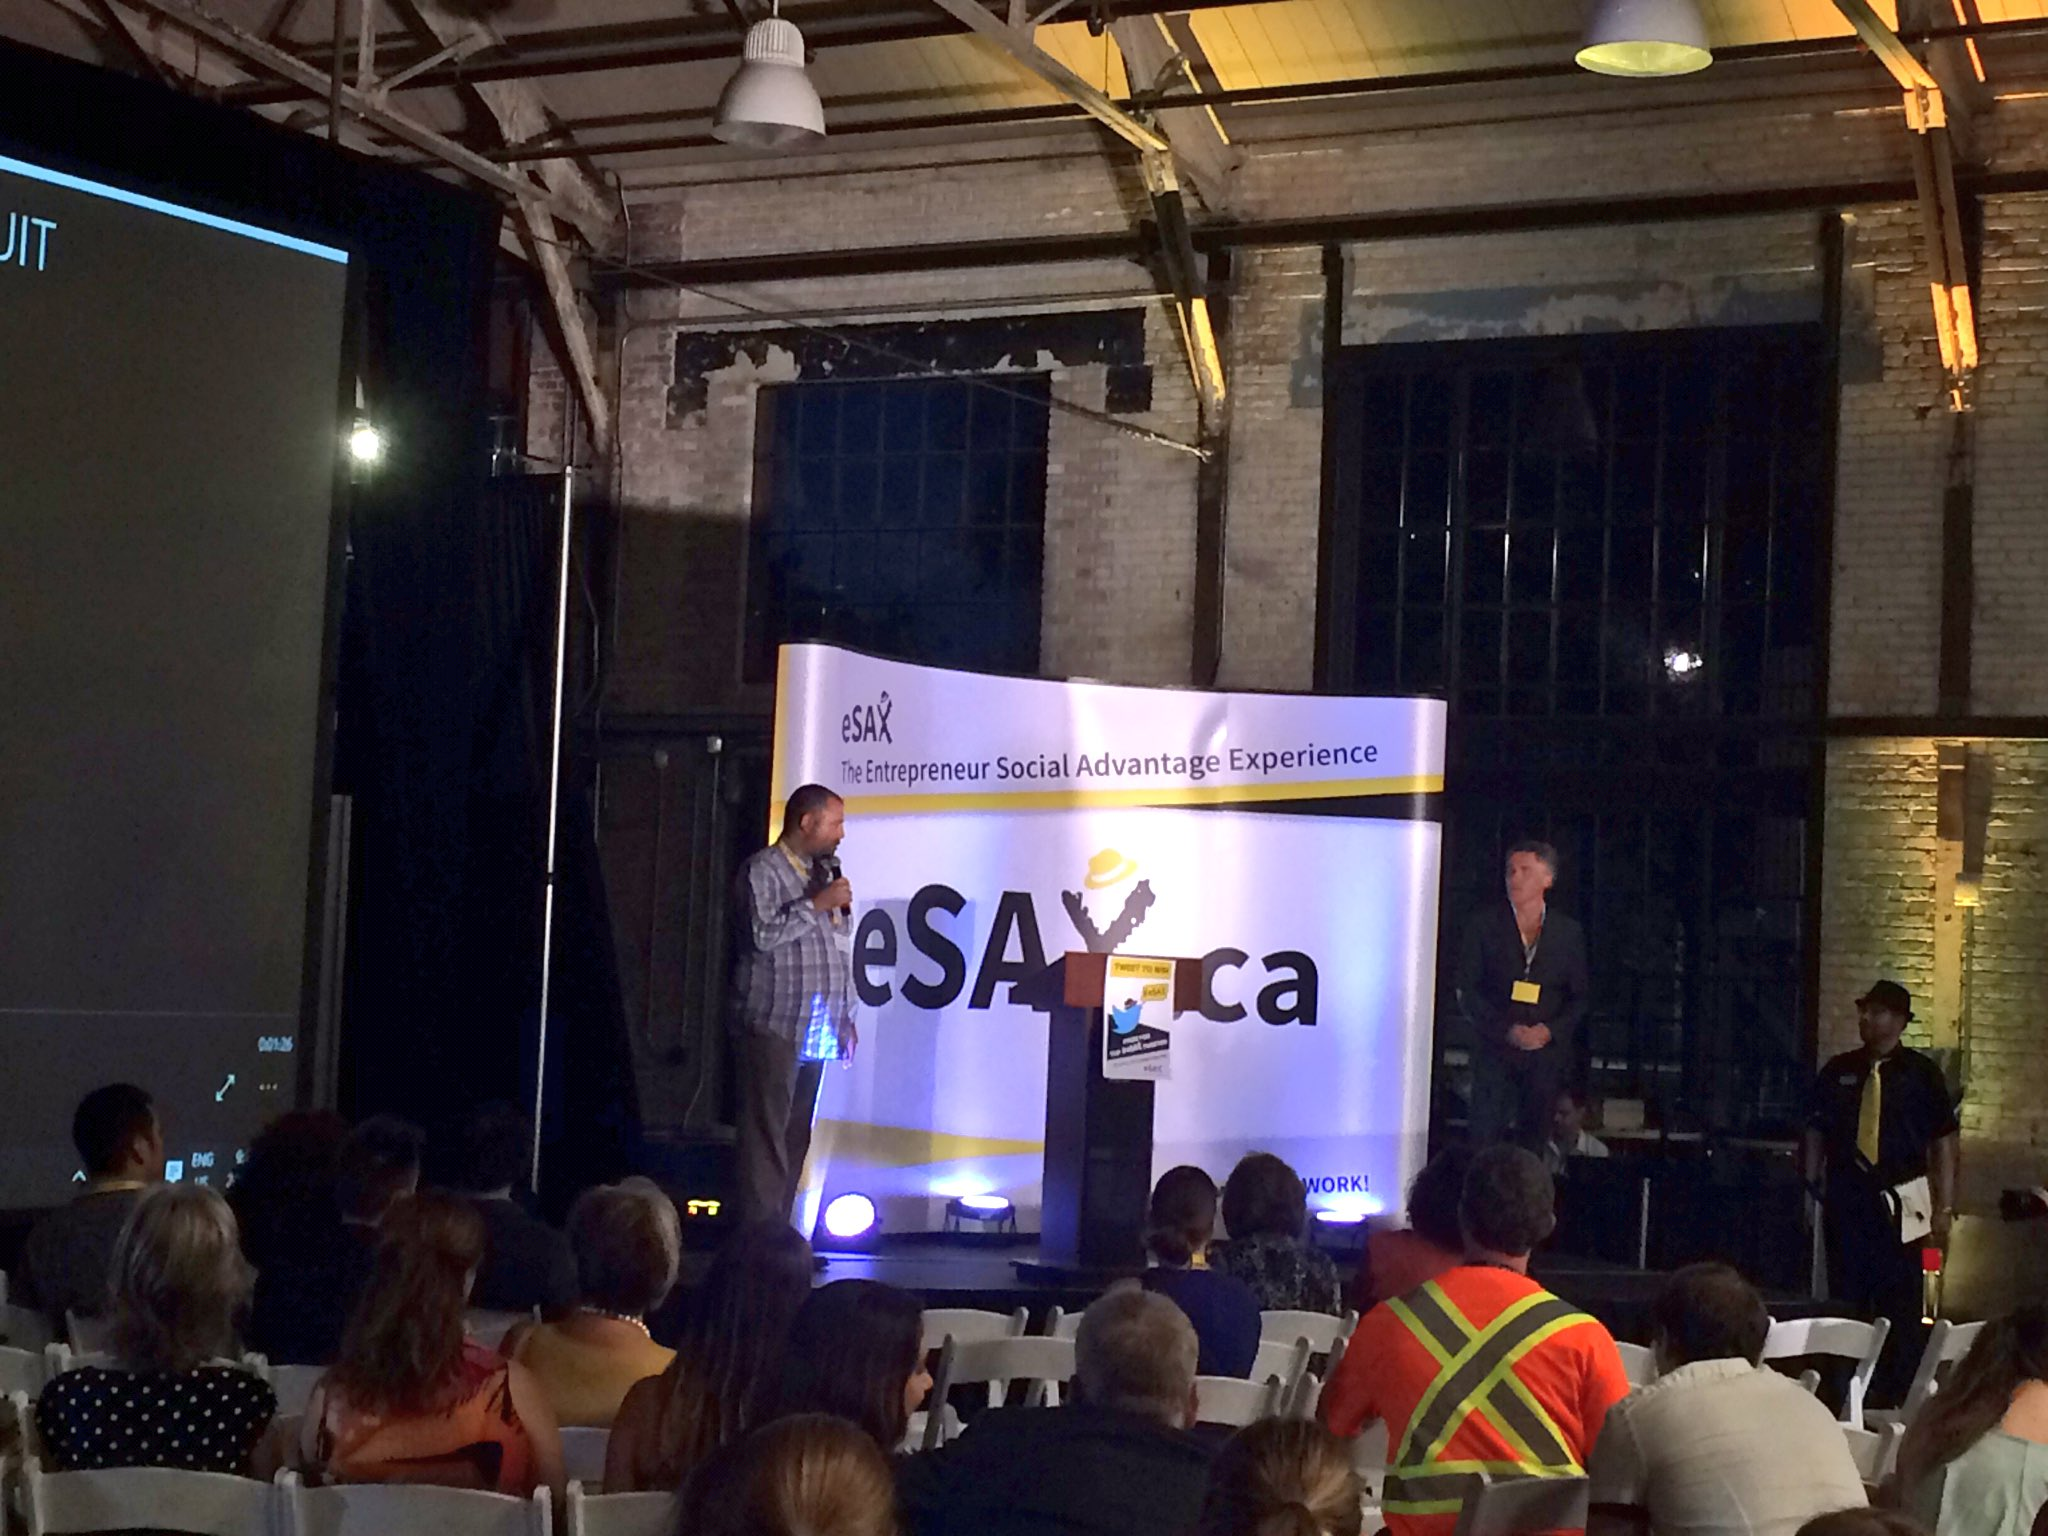 Great evening at #eSax - Wonderful #Ottawa biz community: $700 raised for @CHEOhospital Max Keeping fund. I <3 that! https://t.co/ee9I3mYrLh